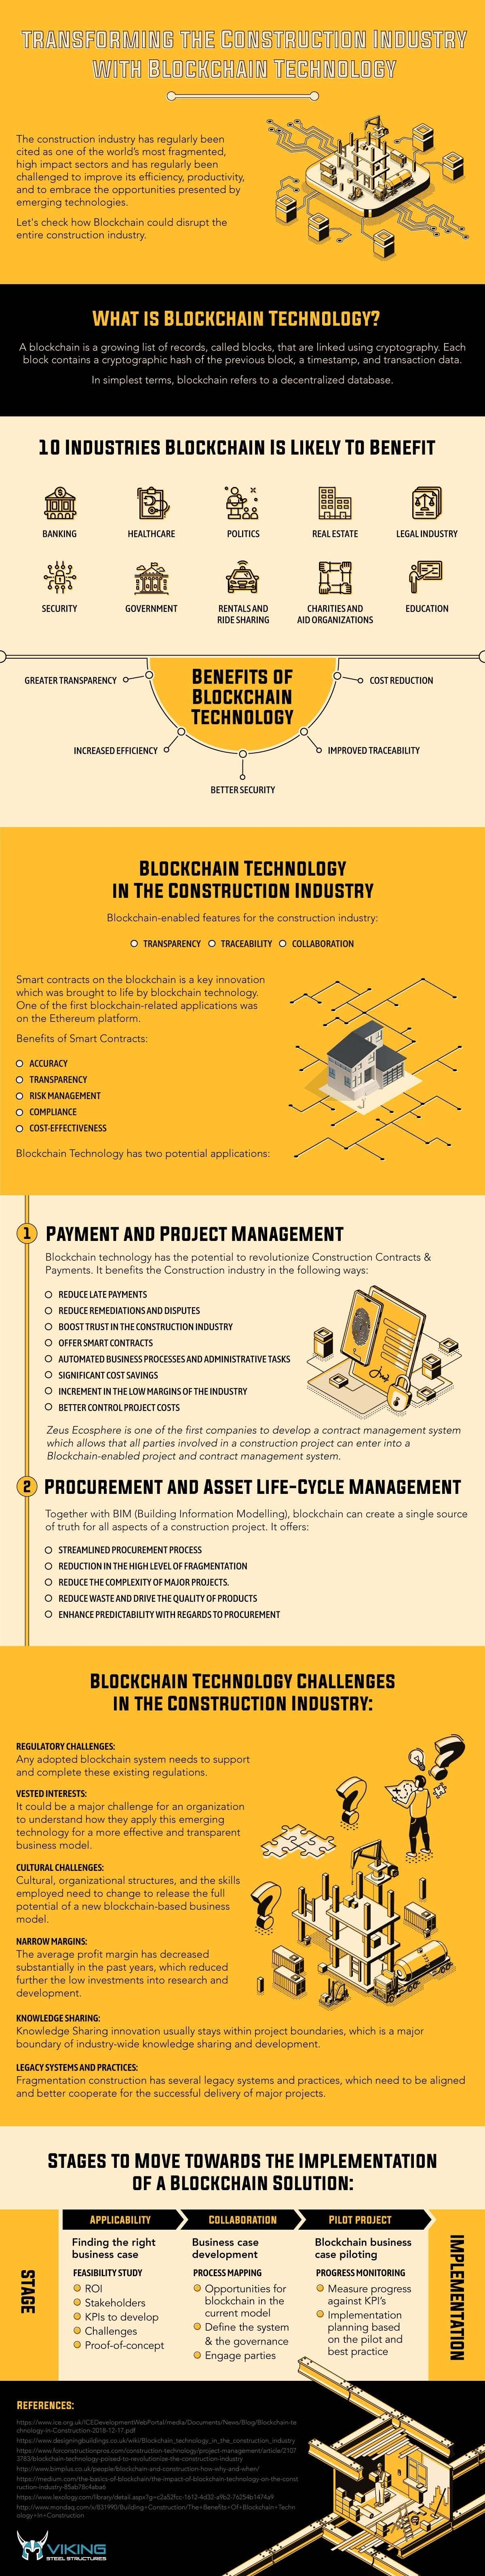 Transforming the Construction Industry with Blockchain Technology #infographic